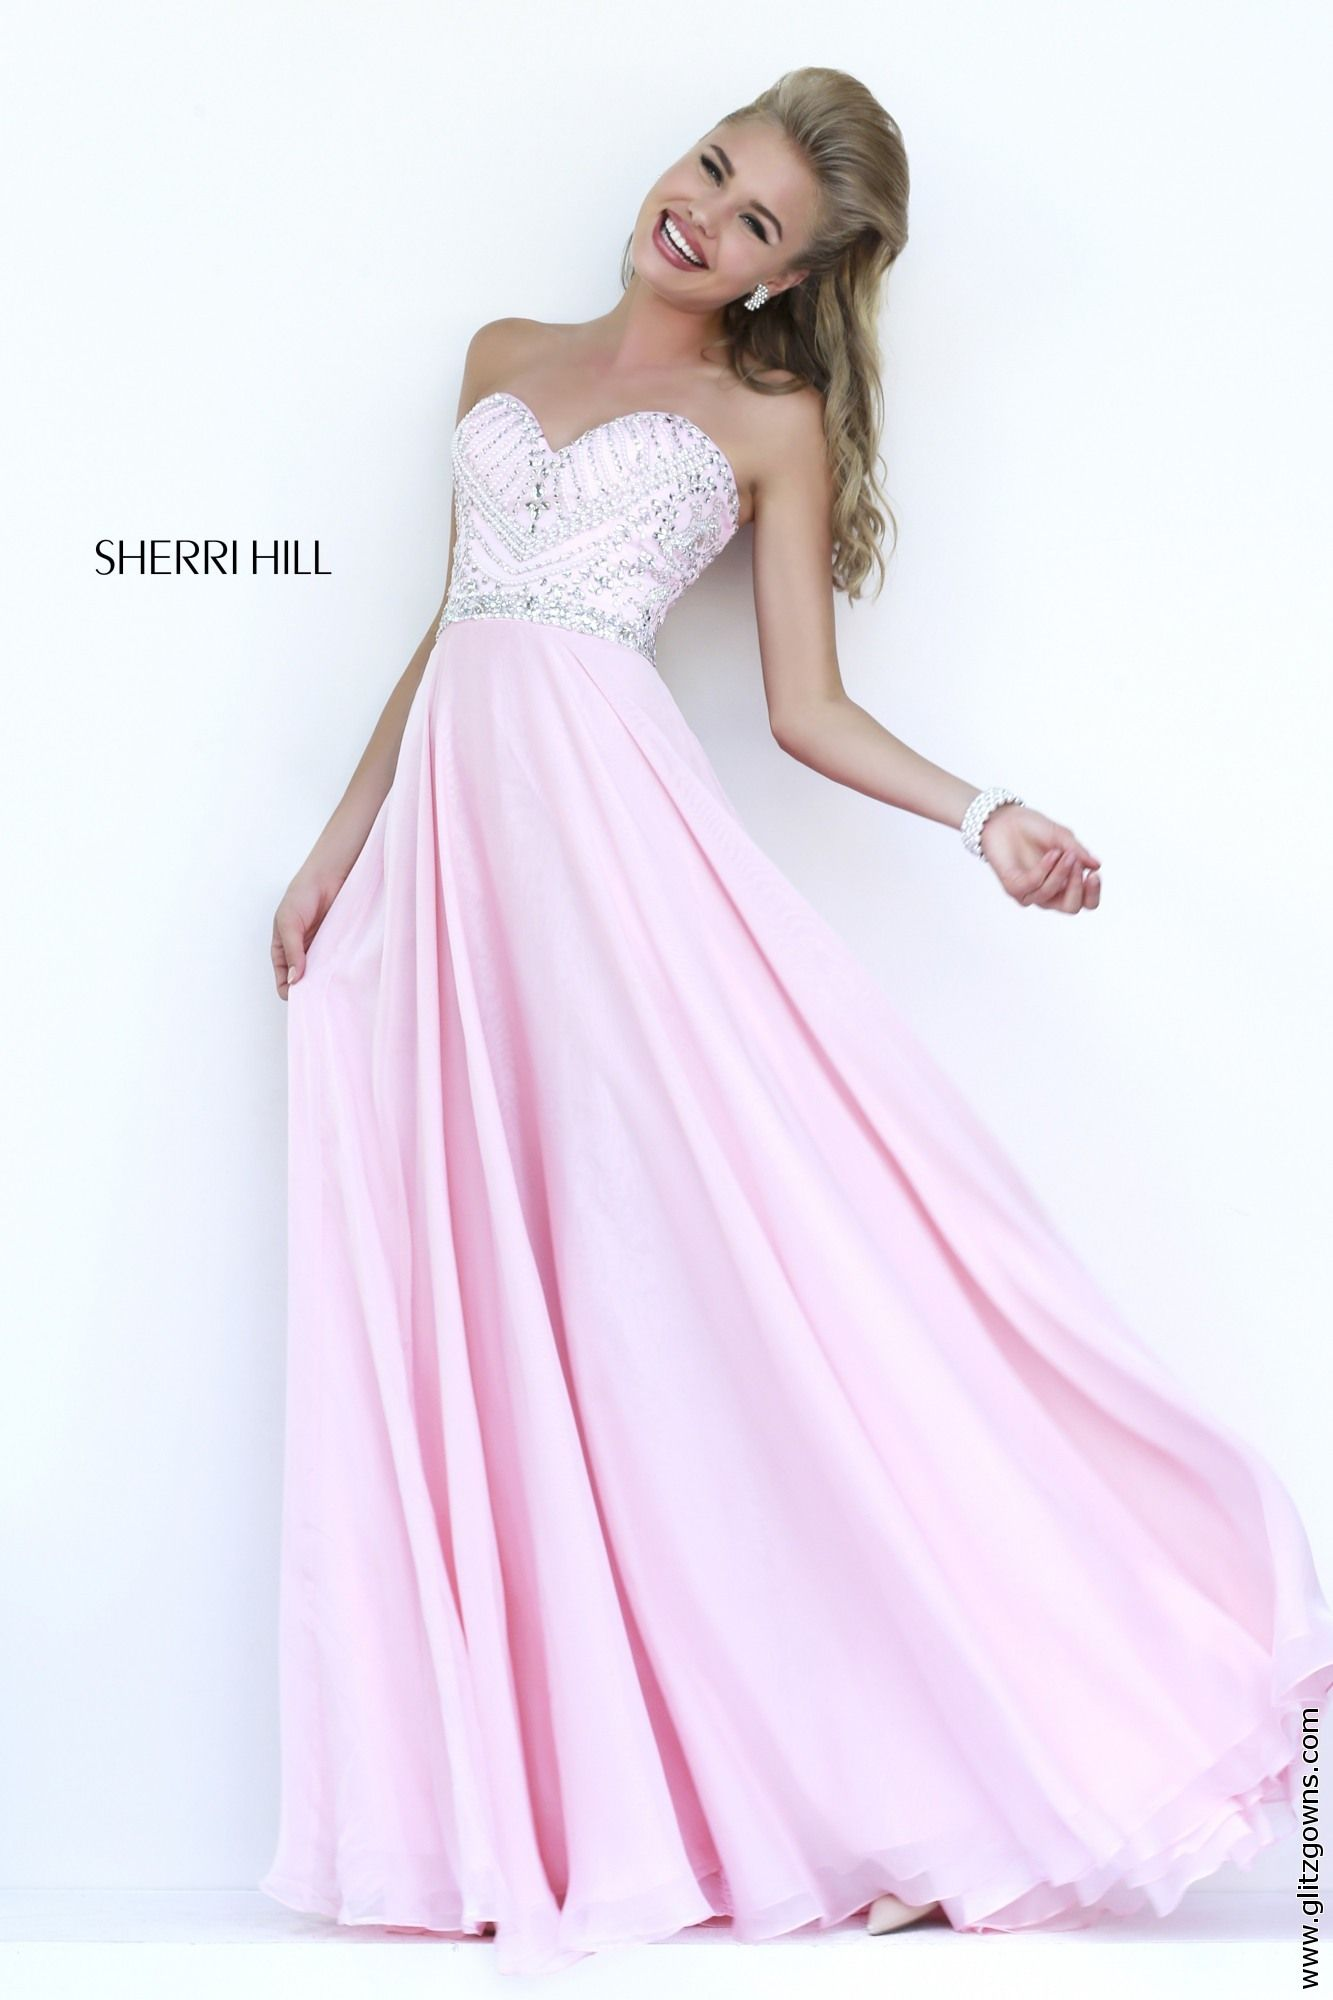 Glitz sherri hill dreaming pinterest prom homecoming